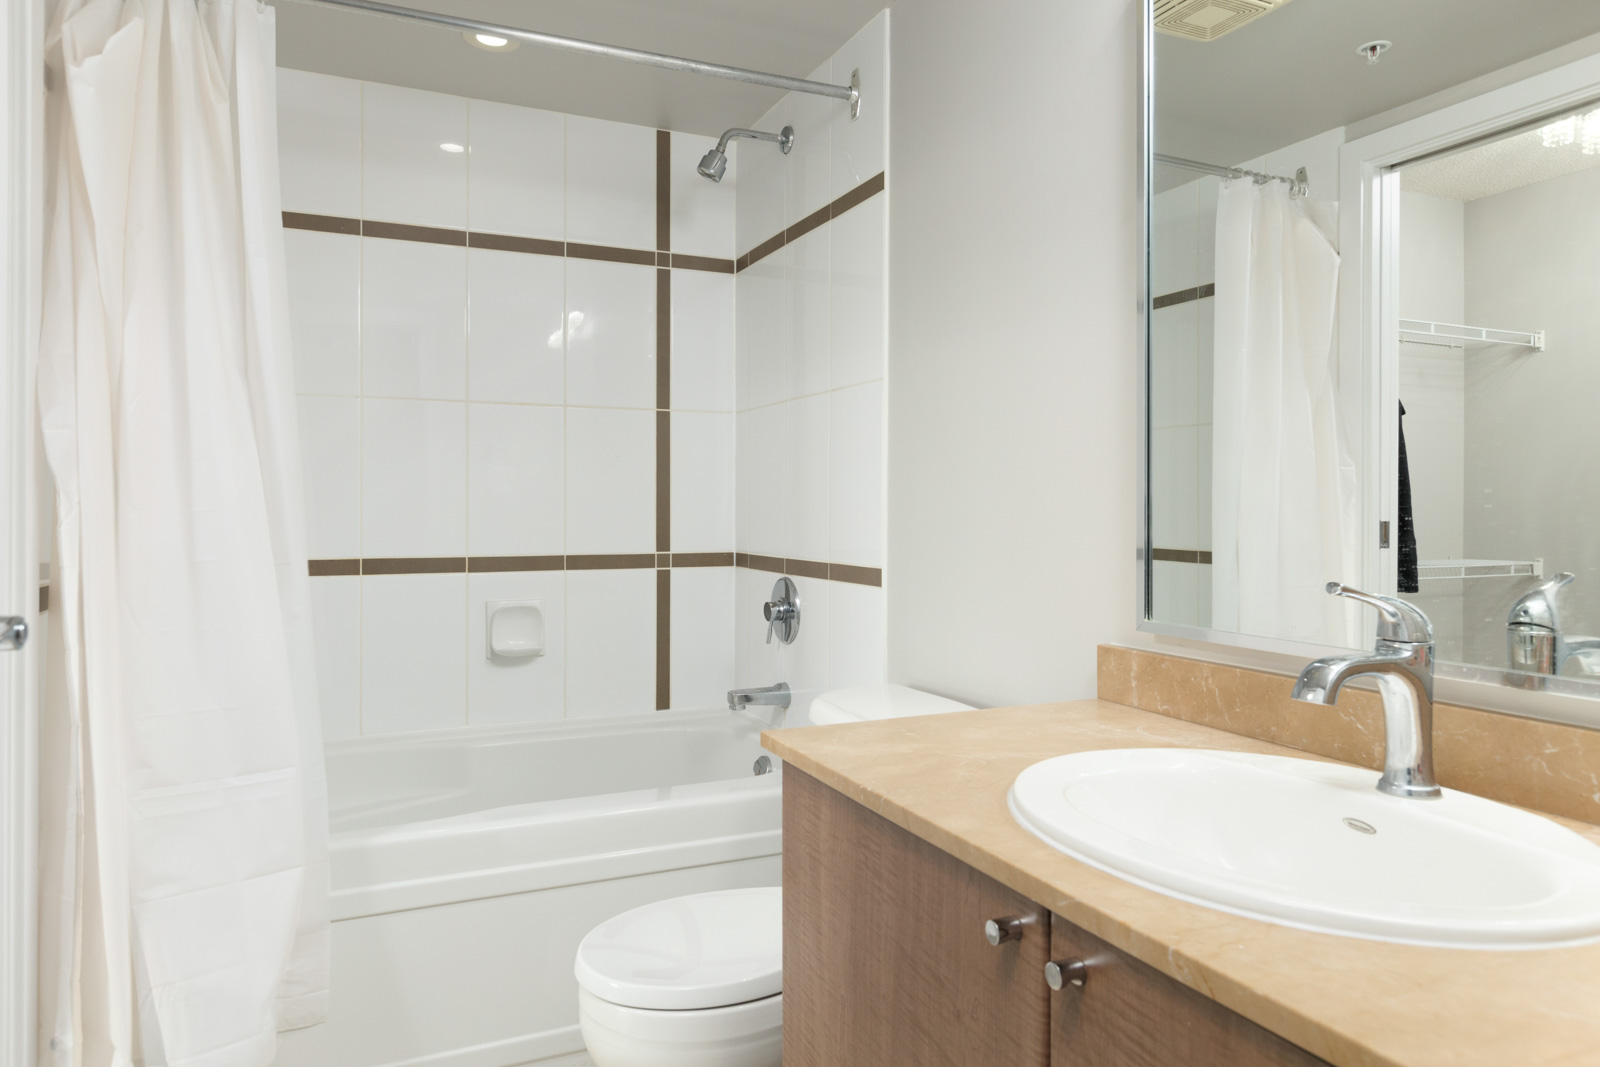 A bathroom with white tiling, white walls and large mirrors